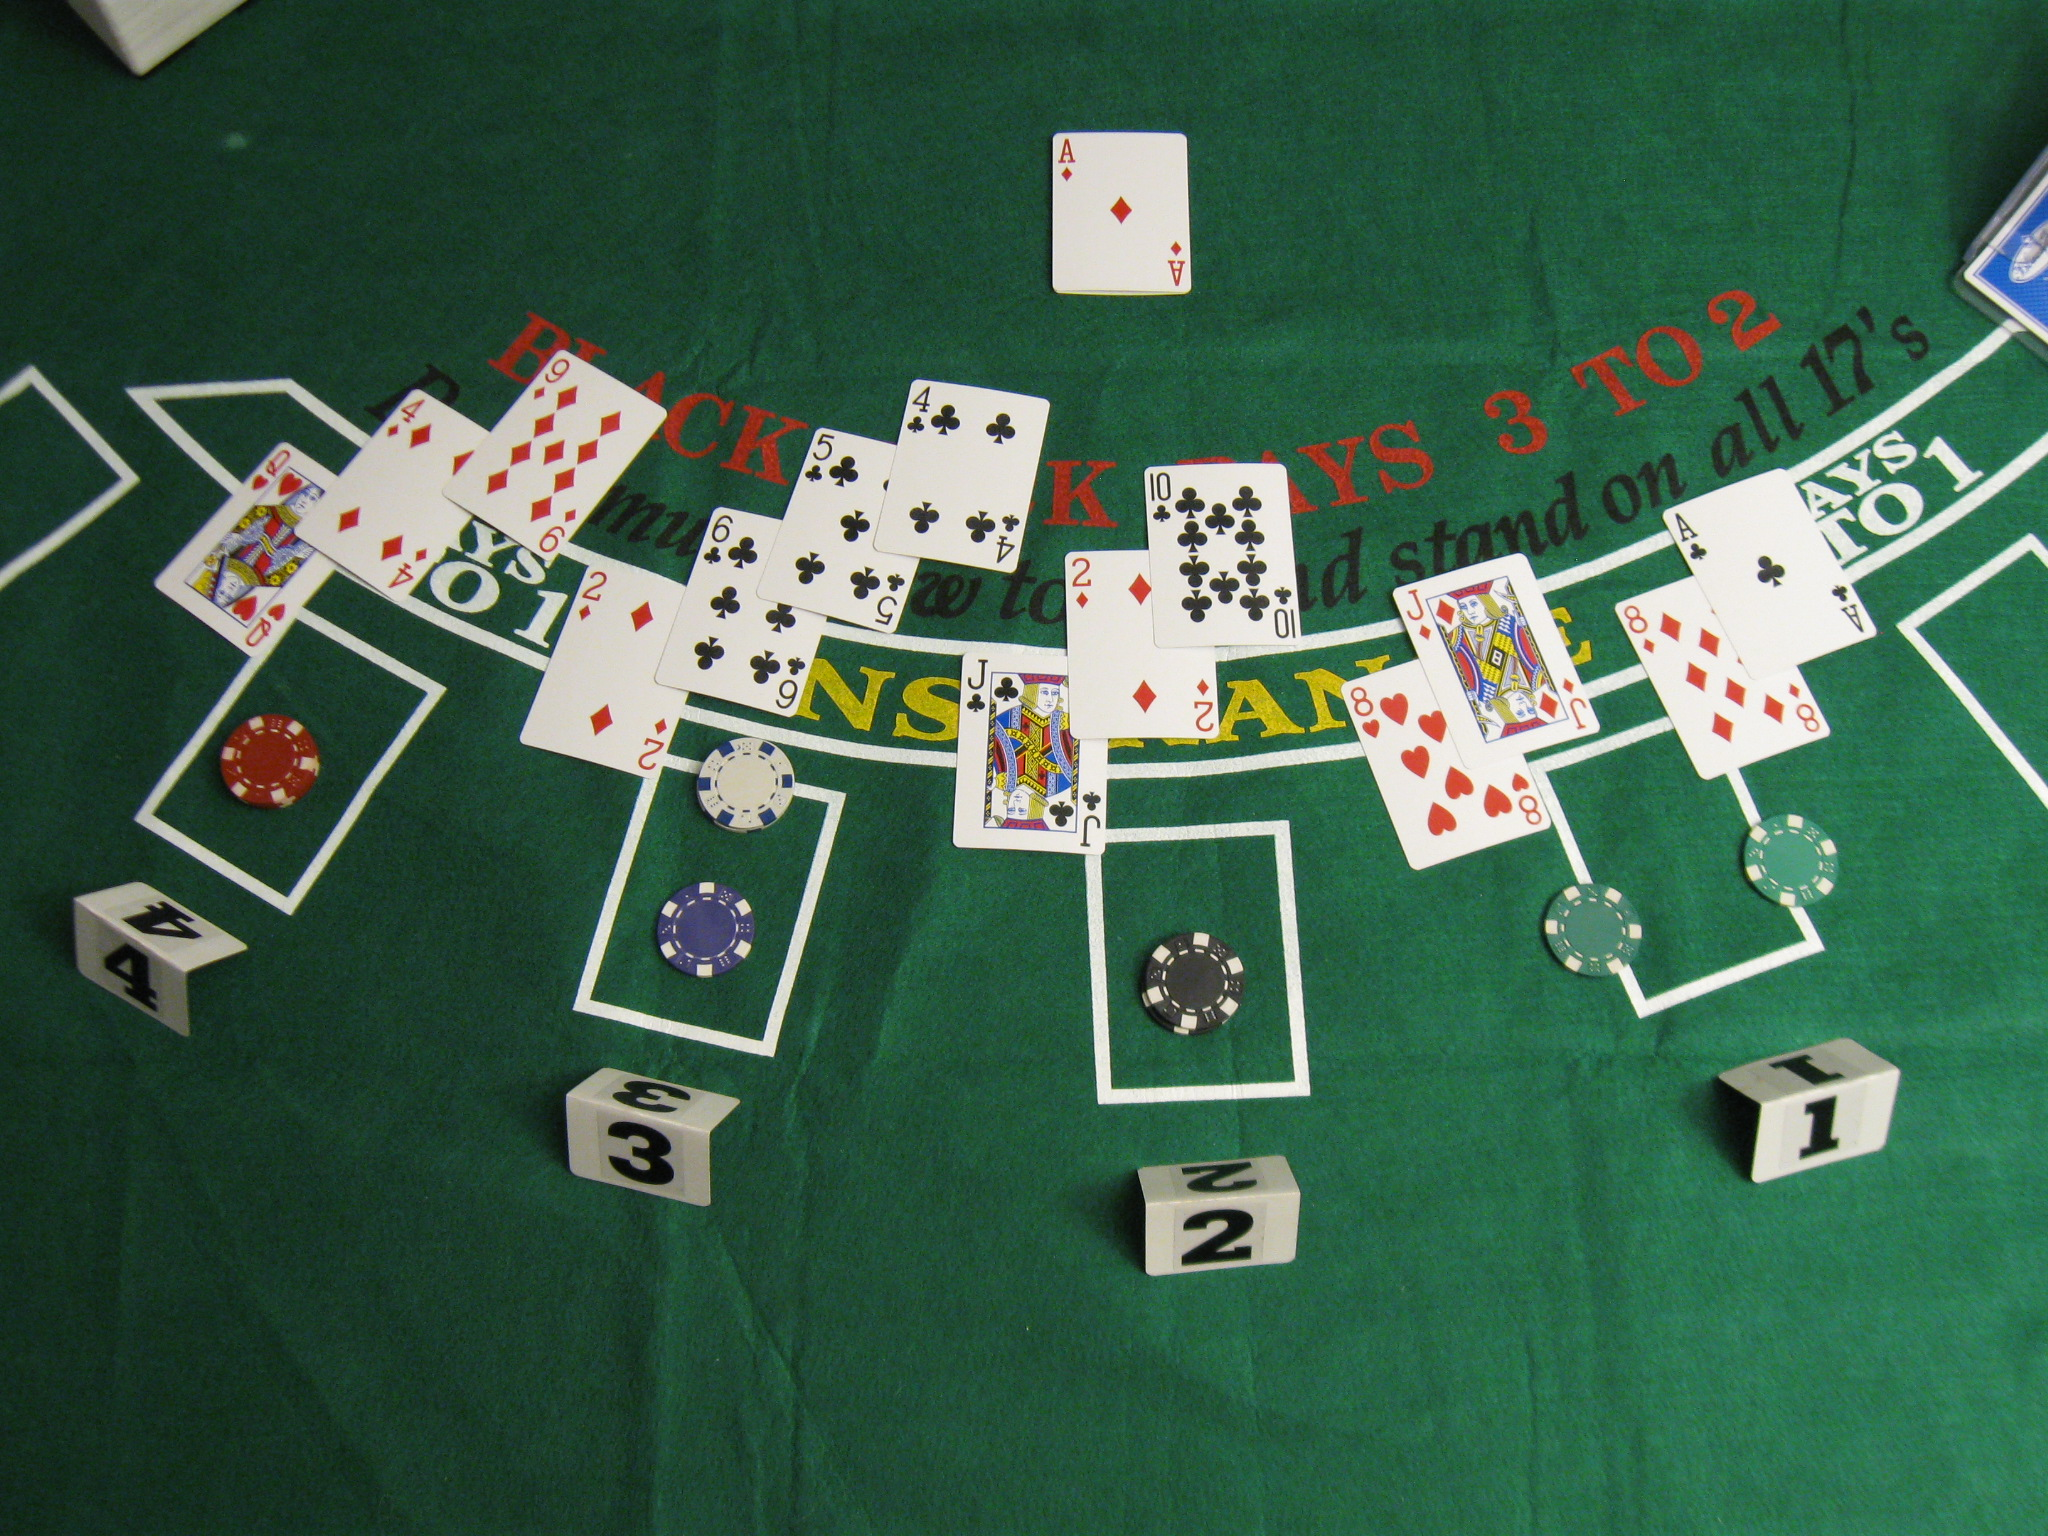 Blackjack en ligne compter les cartes poker rooms in rome italy